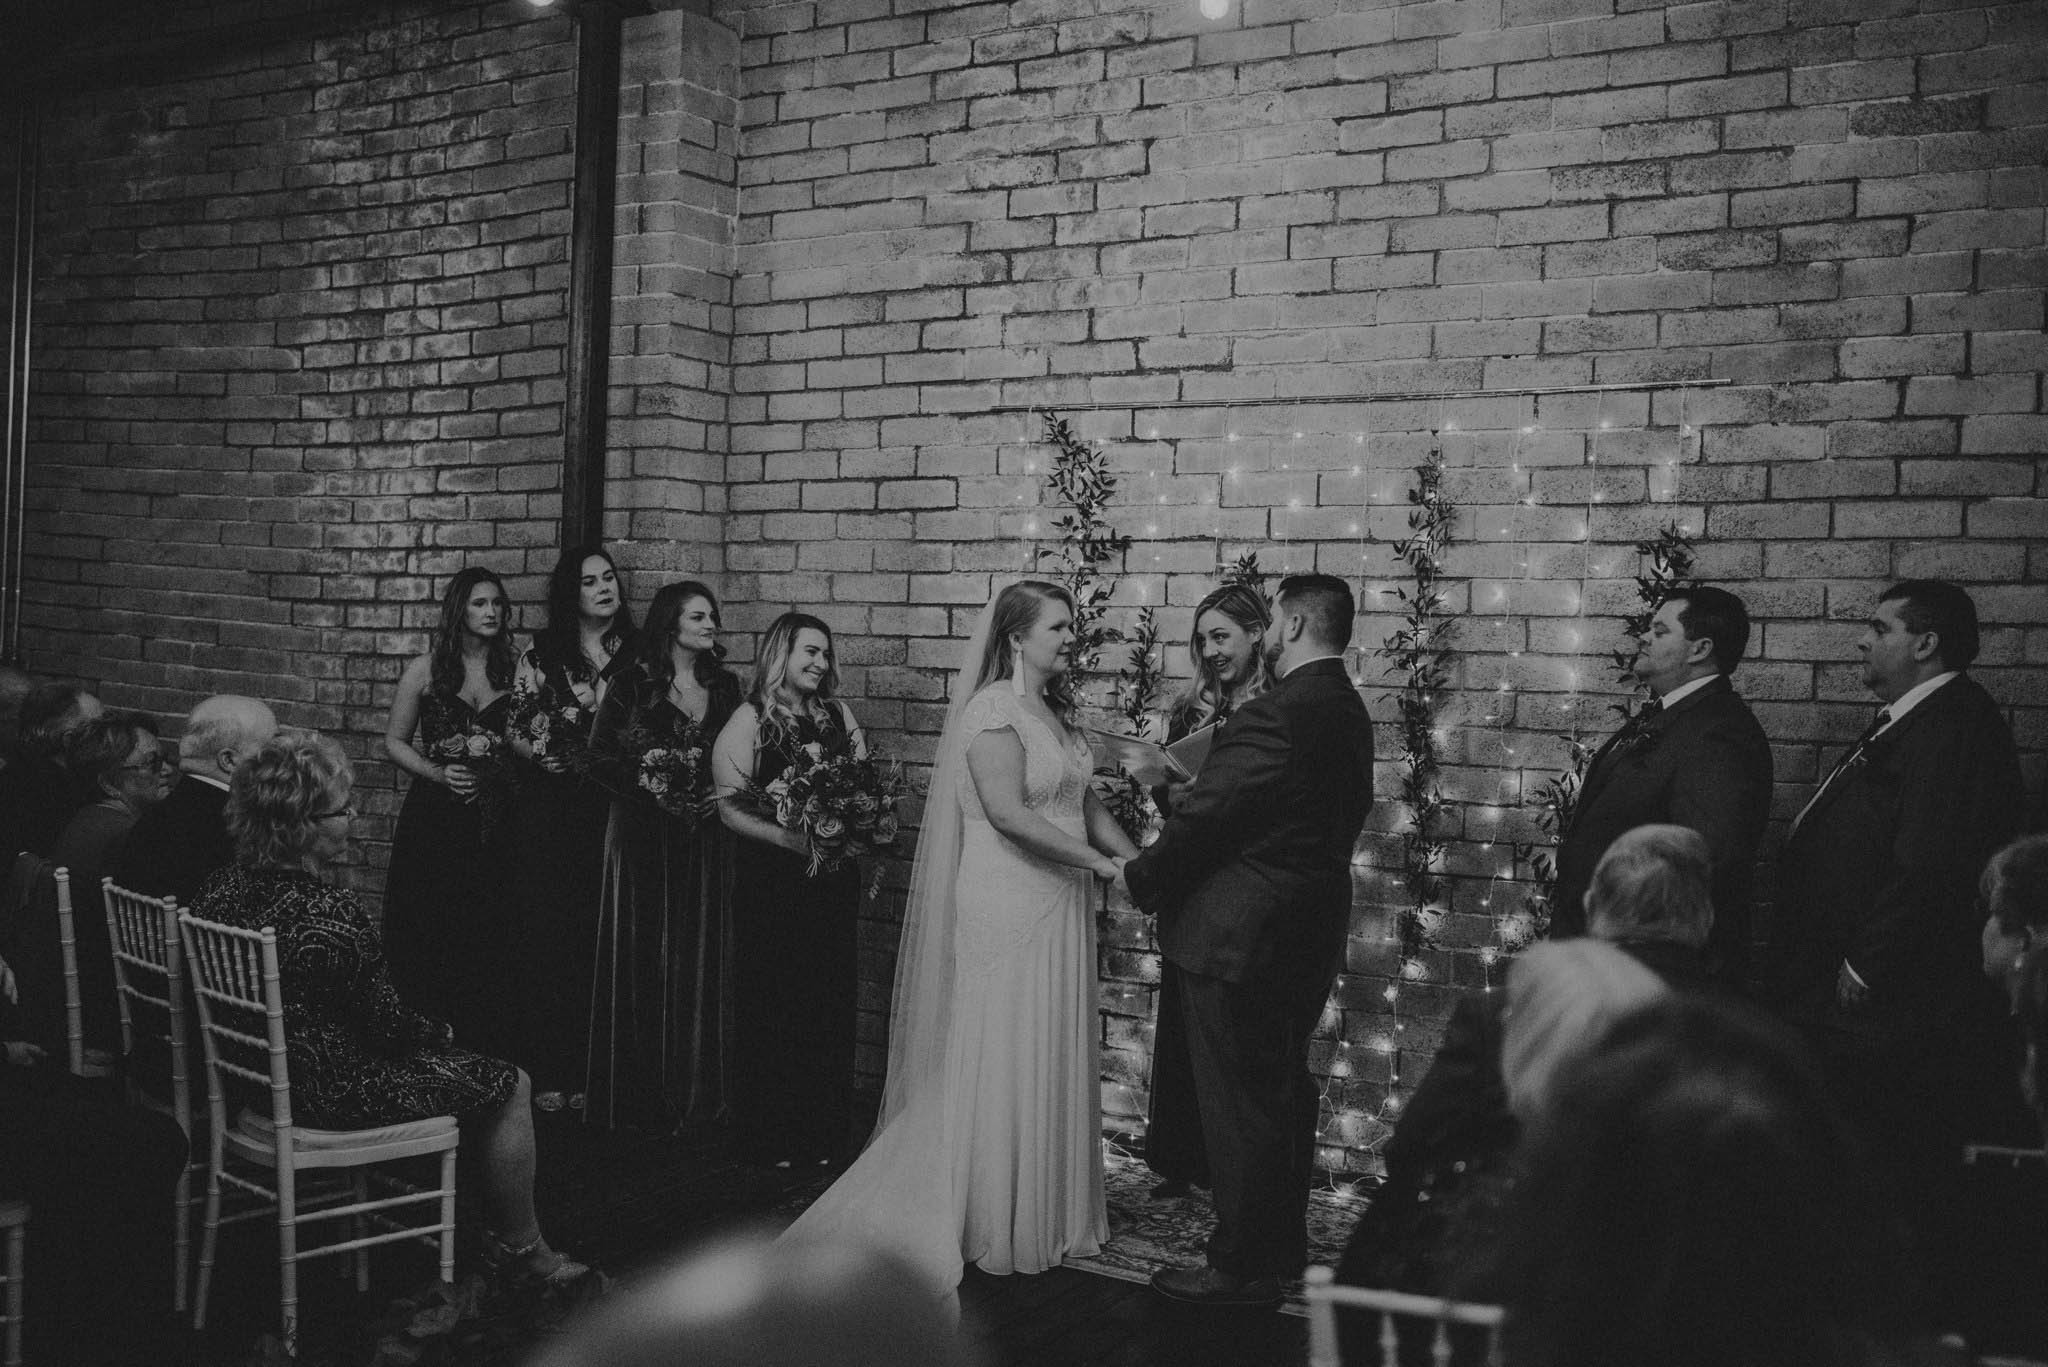 gwen-andrew-within-sodo-downtown-seattle-wedding-photographer-winter-73.jpg